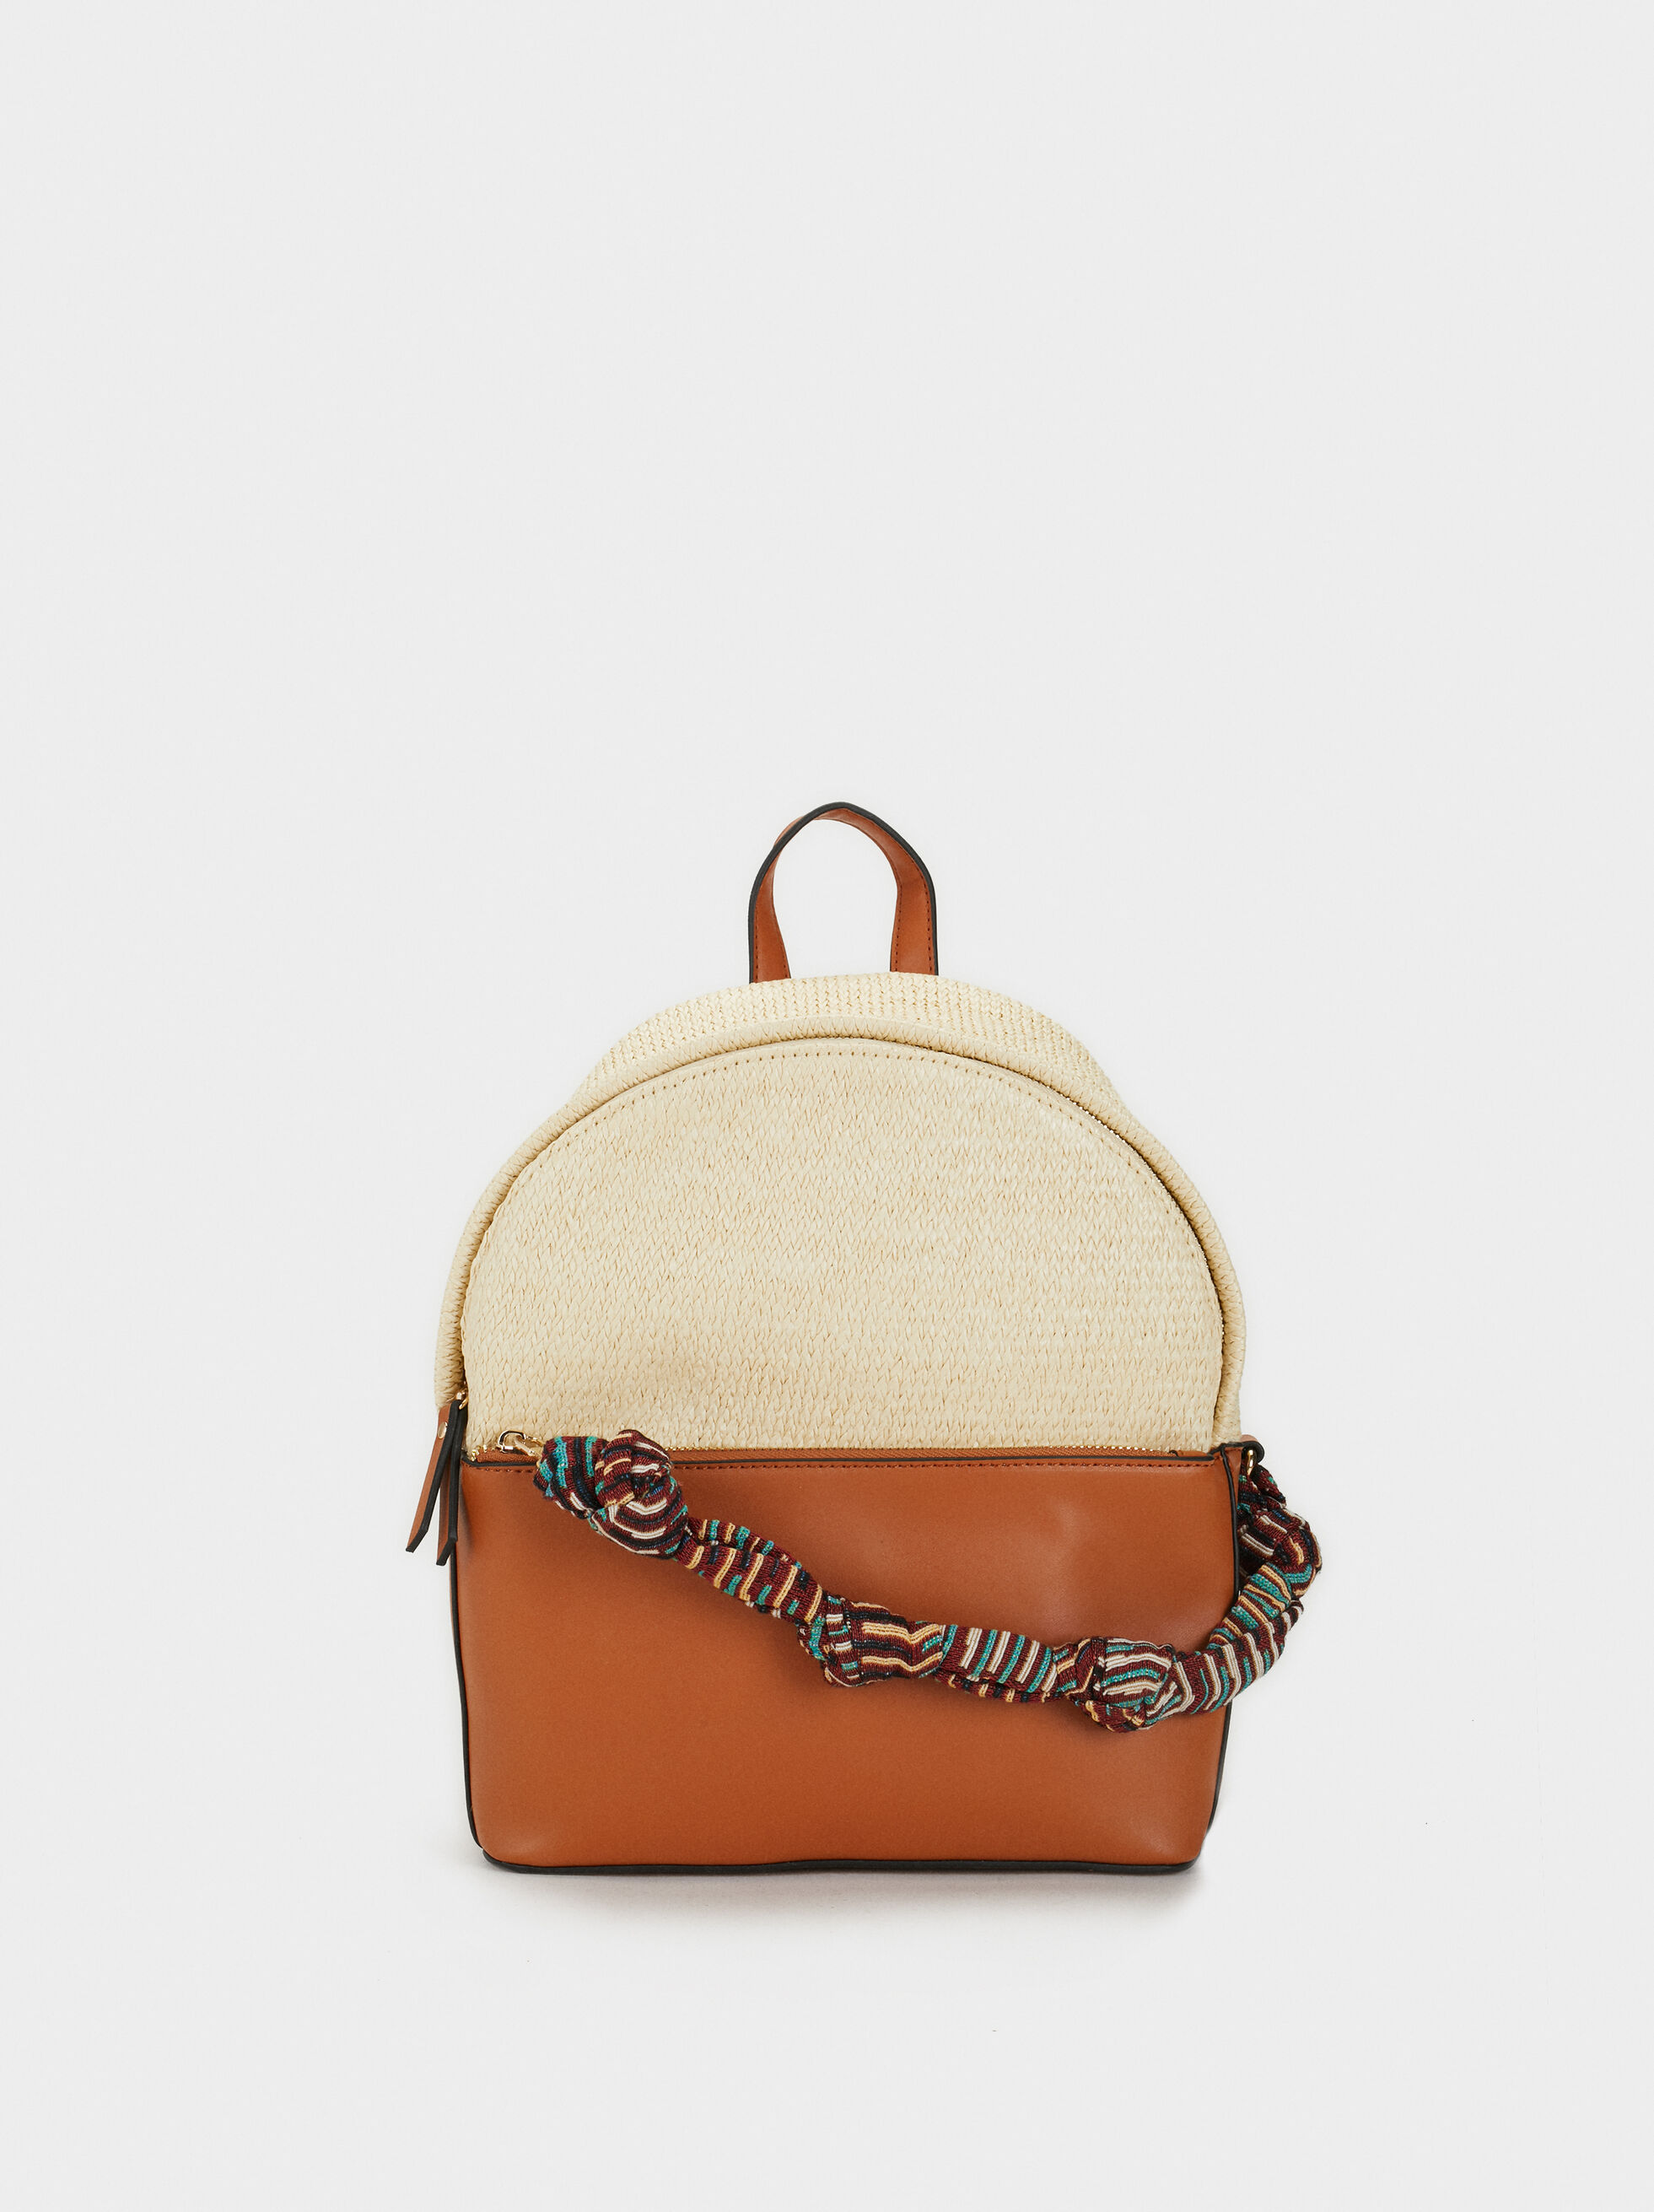 Raffia Effect Backpack, Beige, hi-res